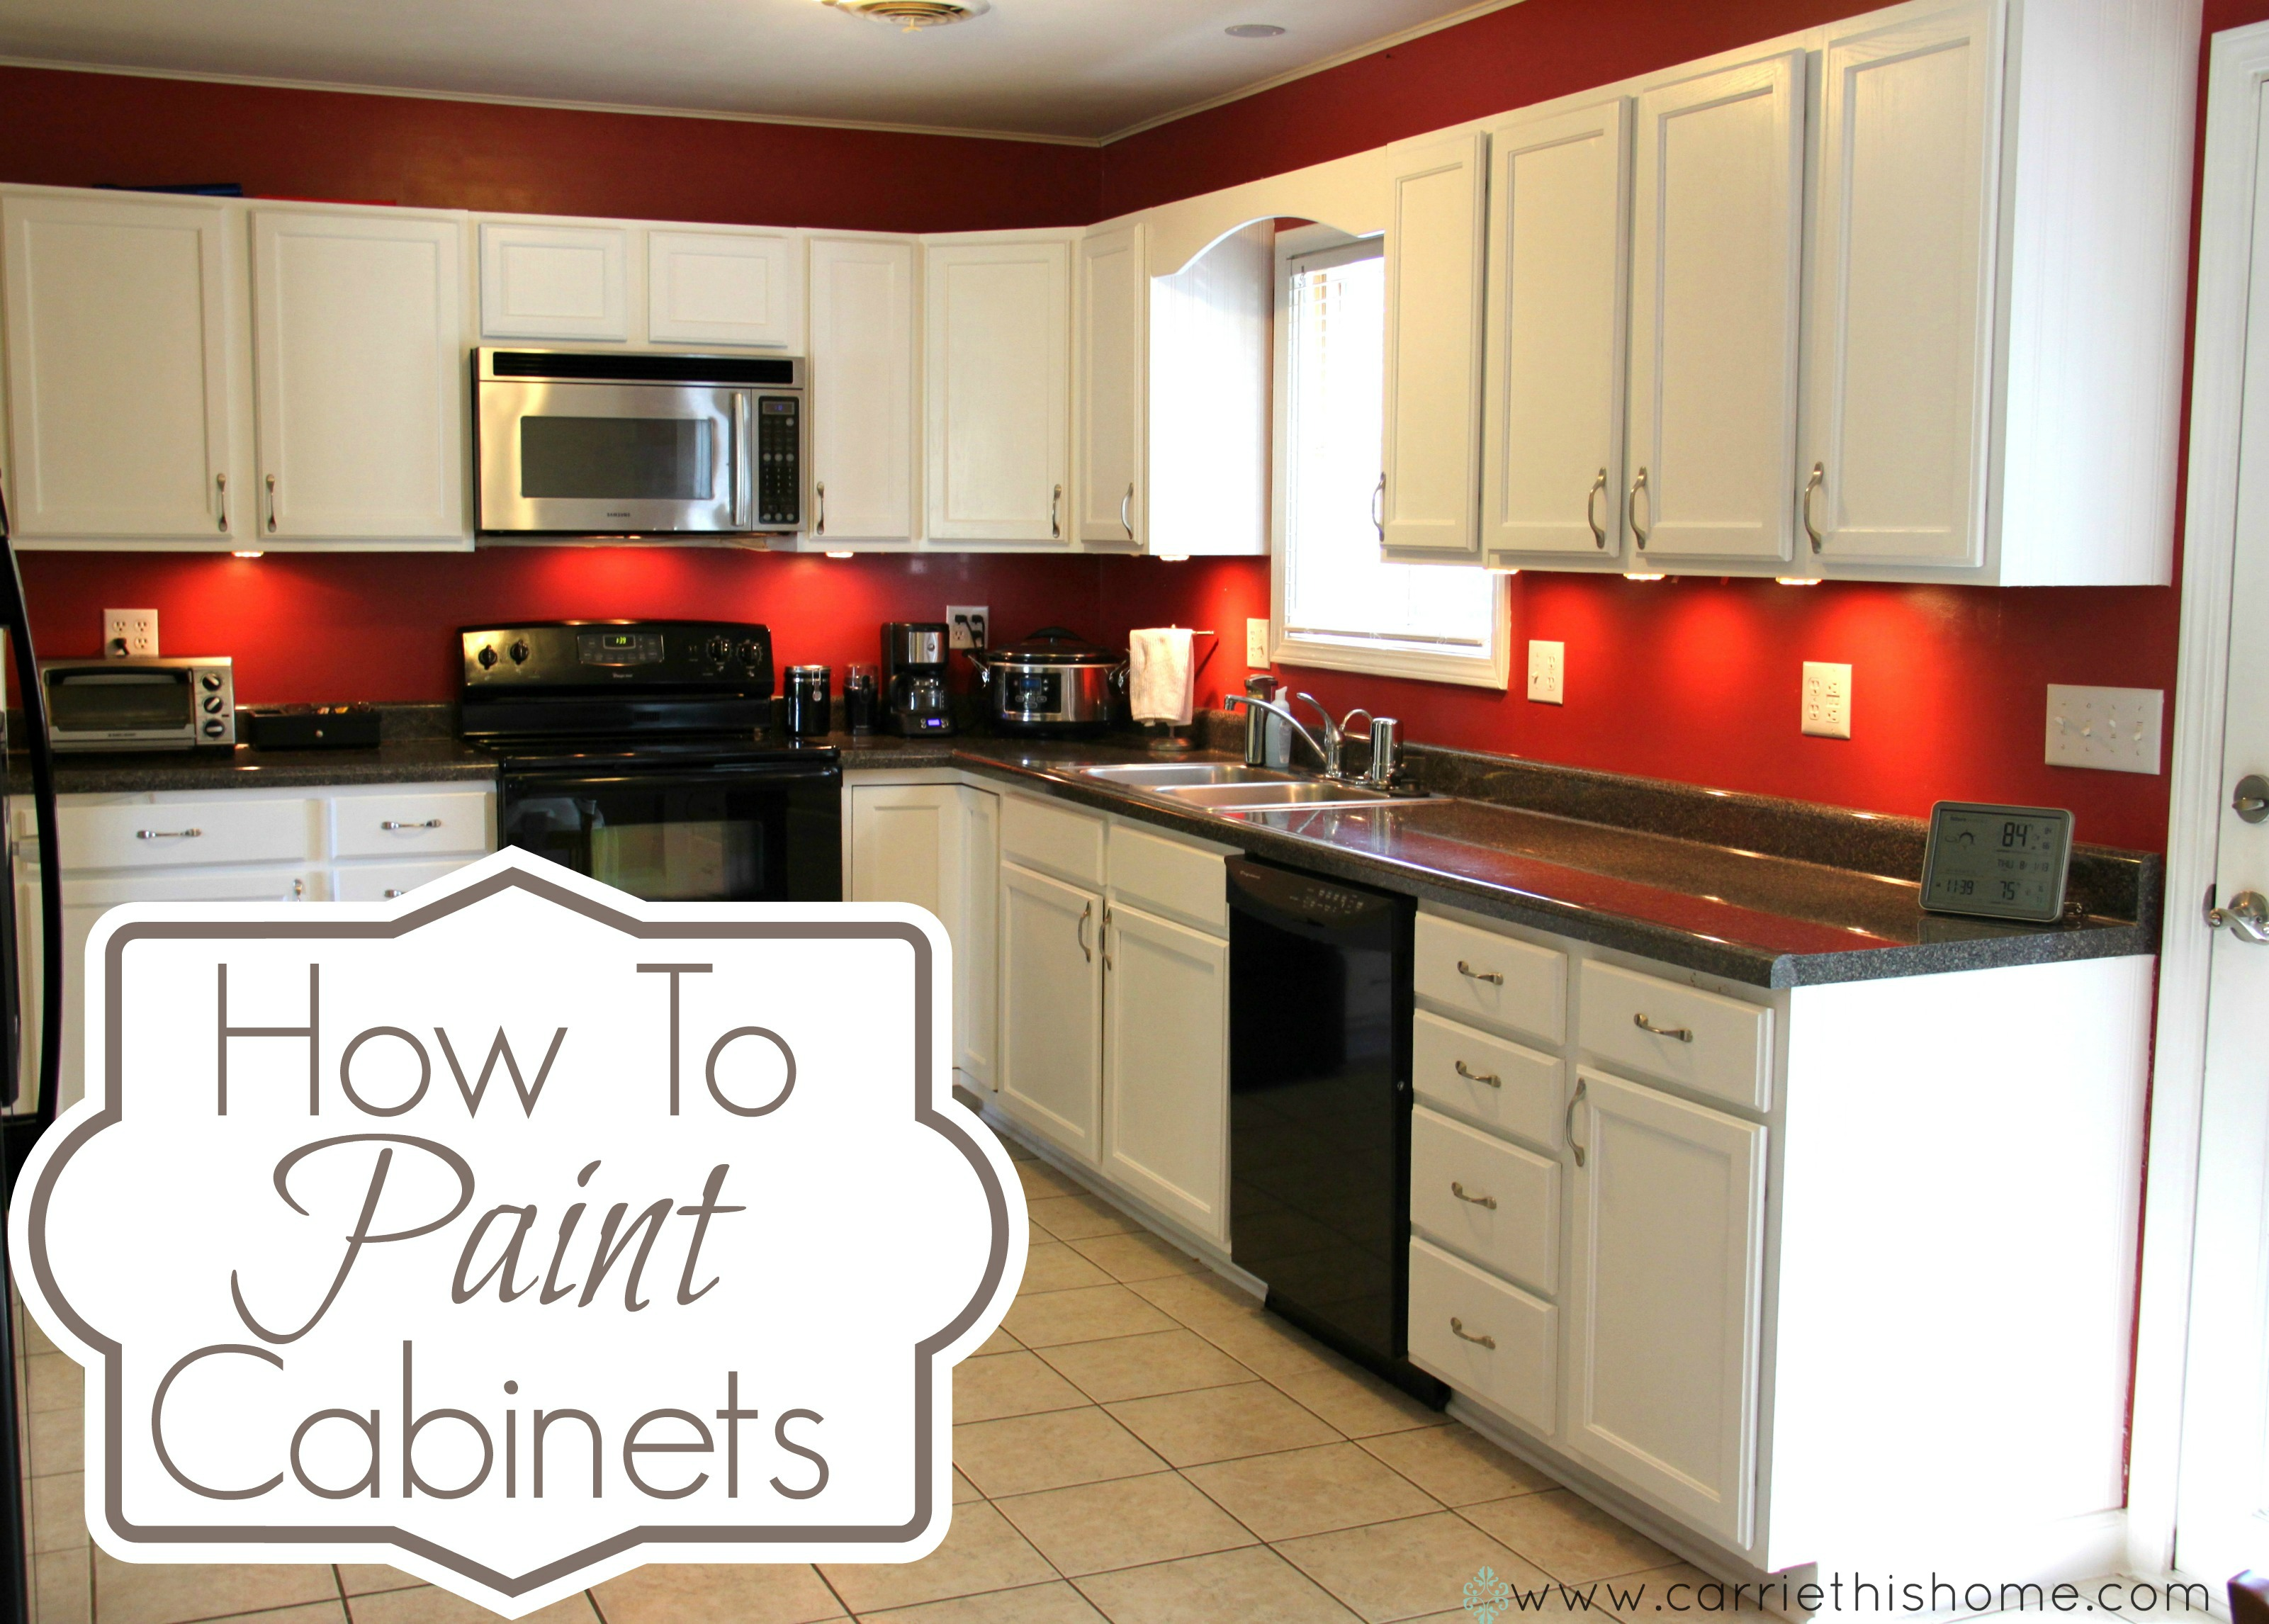 hot to paint kitchen cabinets how to paint cabinets 16626